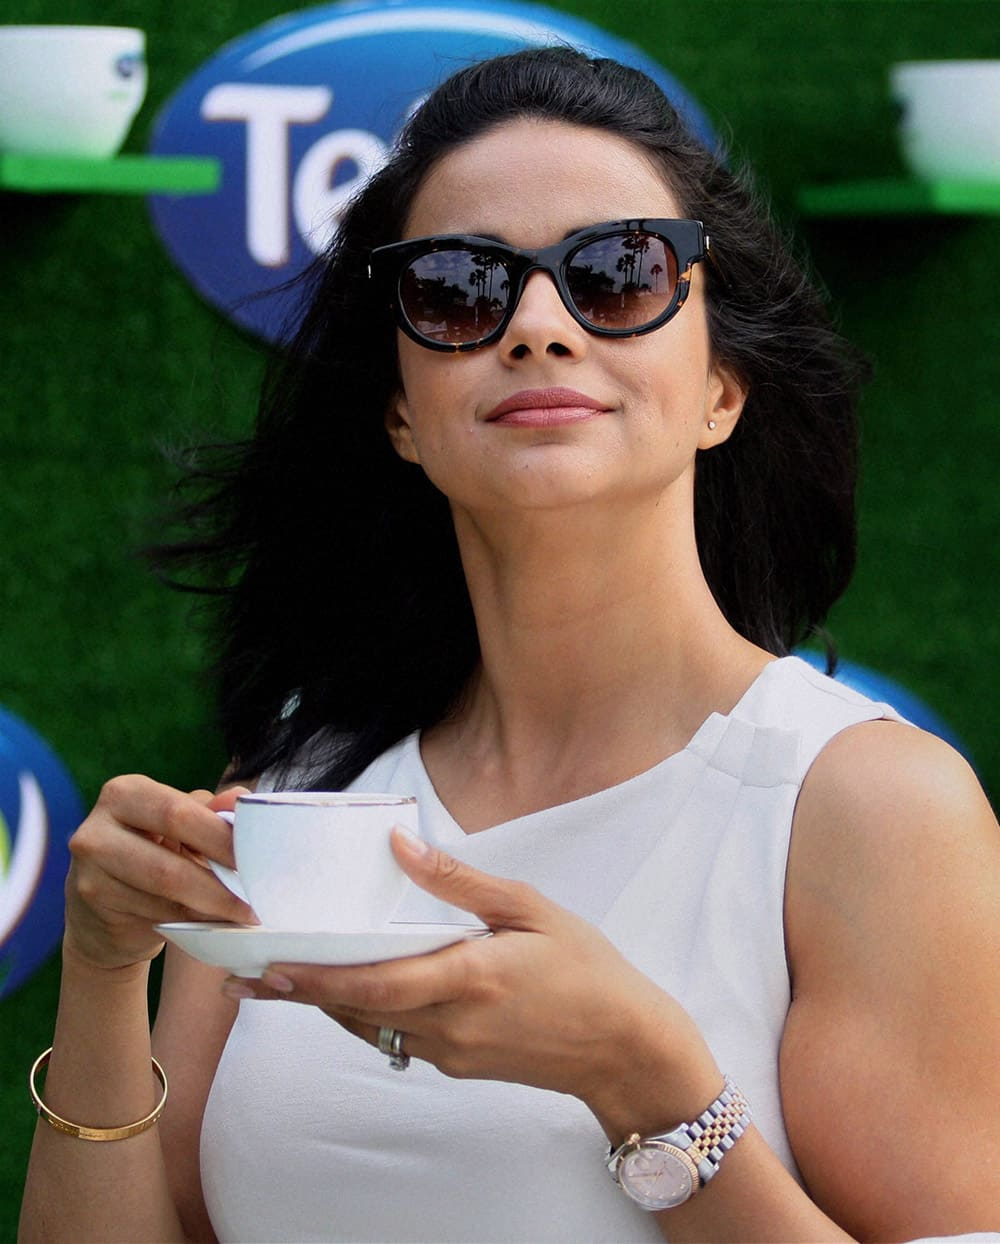 Bollywood actress Gul Panag during an event in Mumbai.